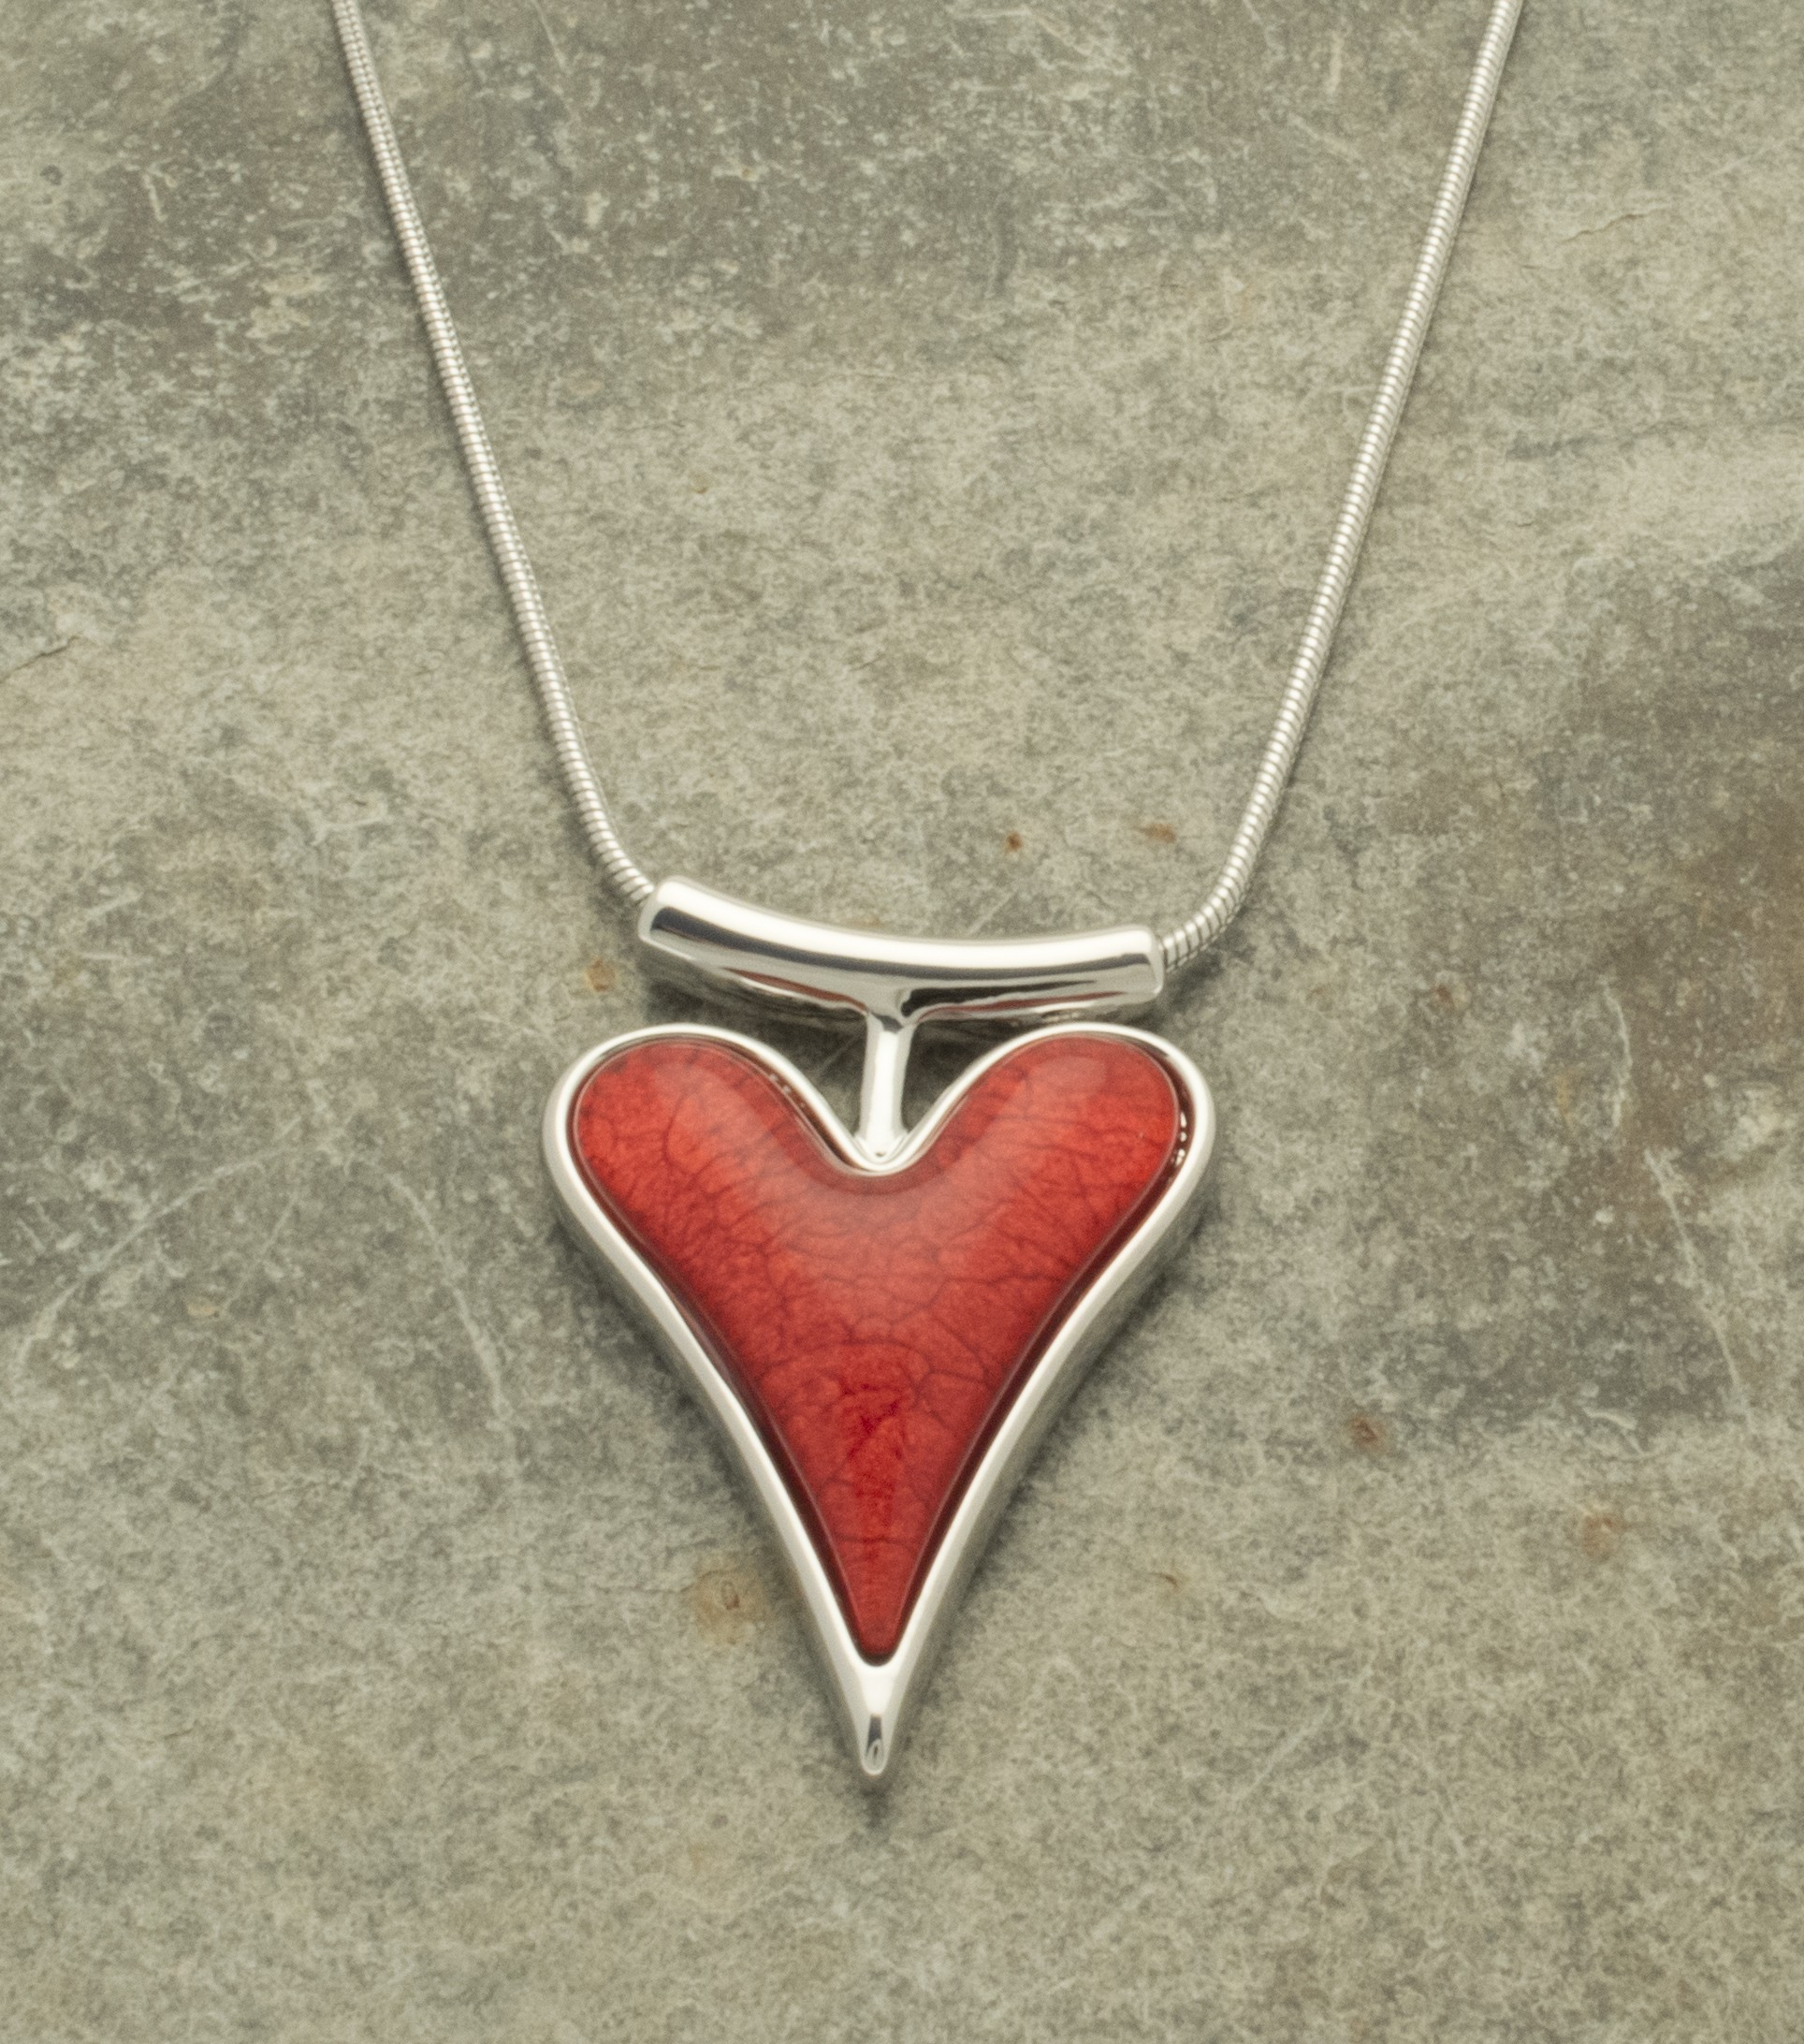 folded necklace creased heart tamir by red zuman